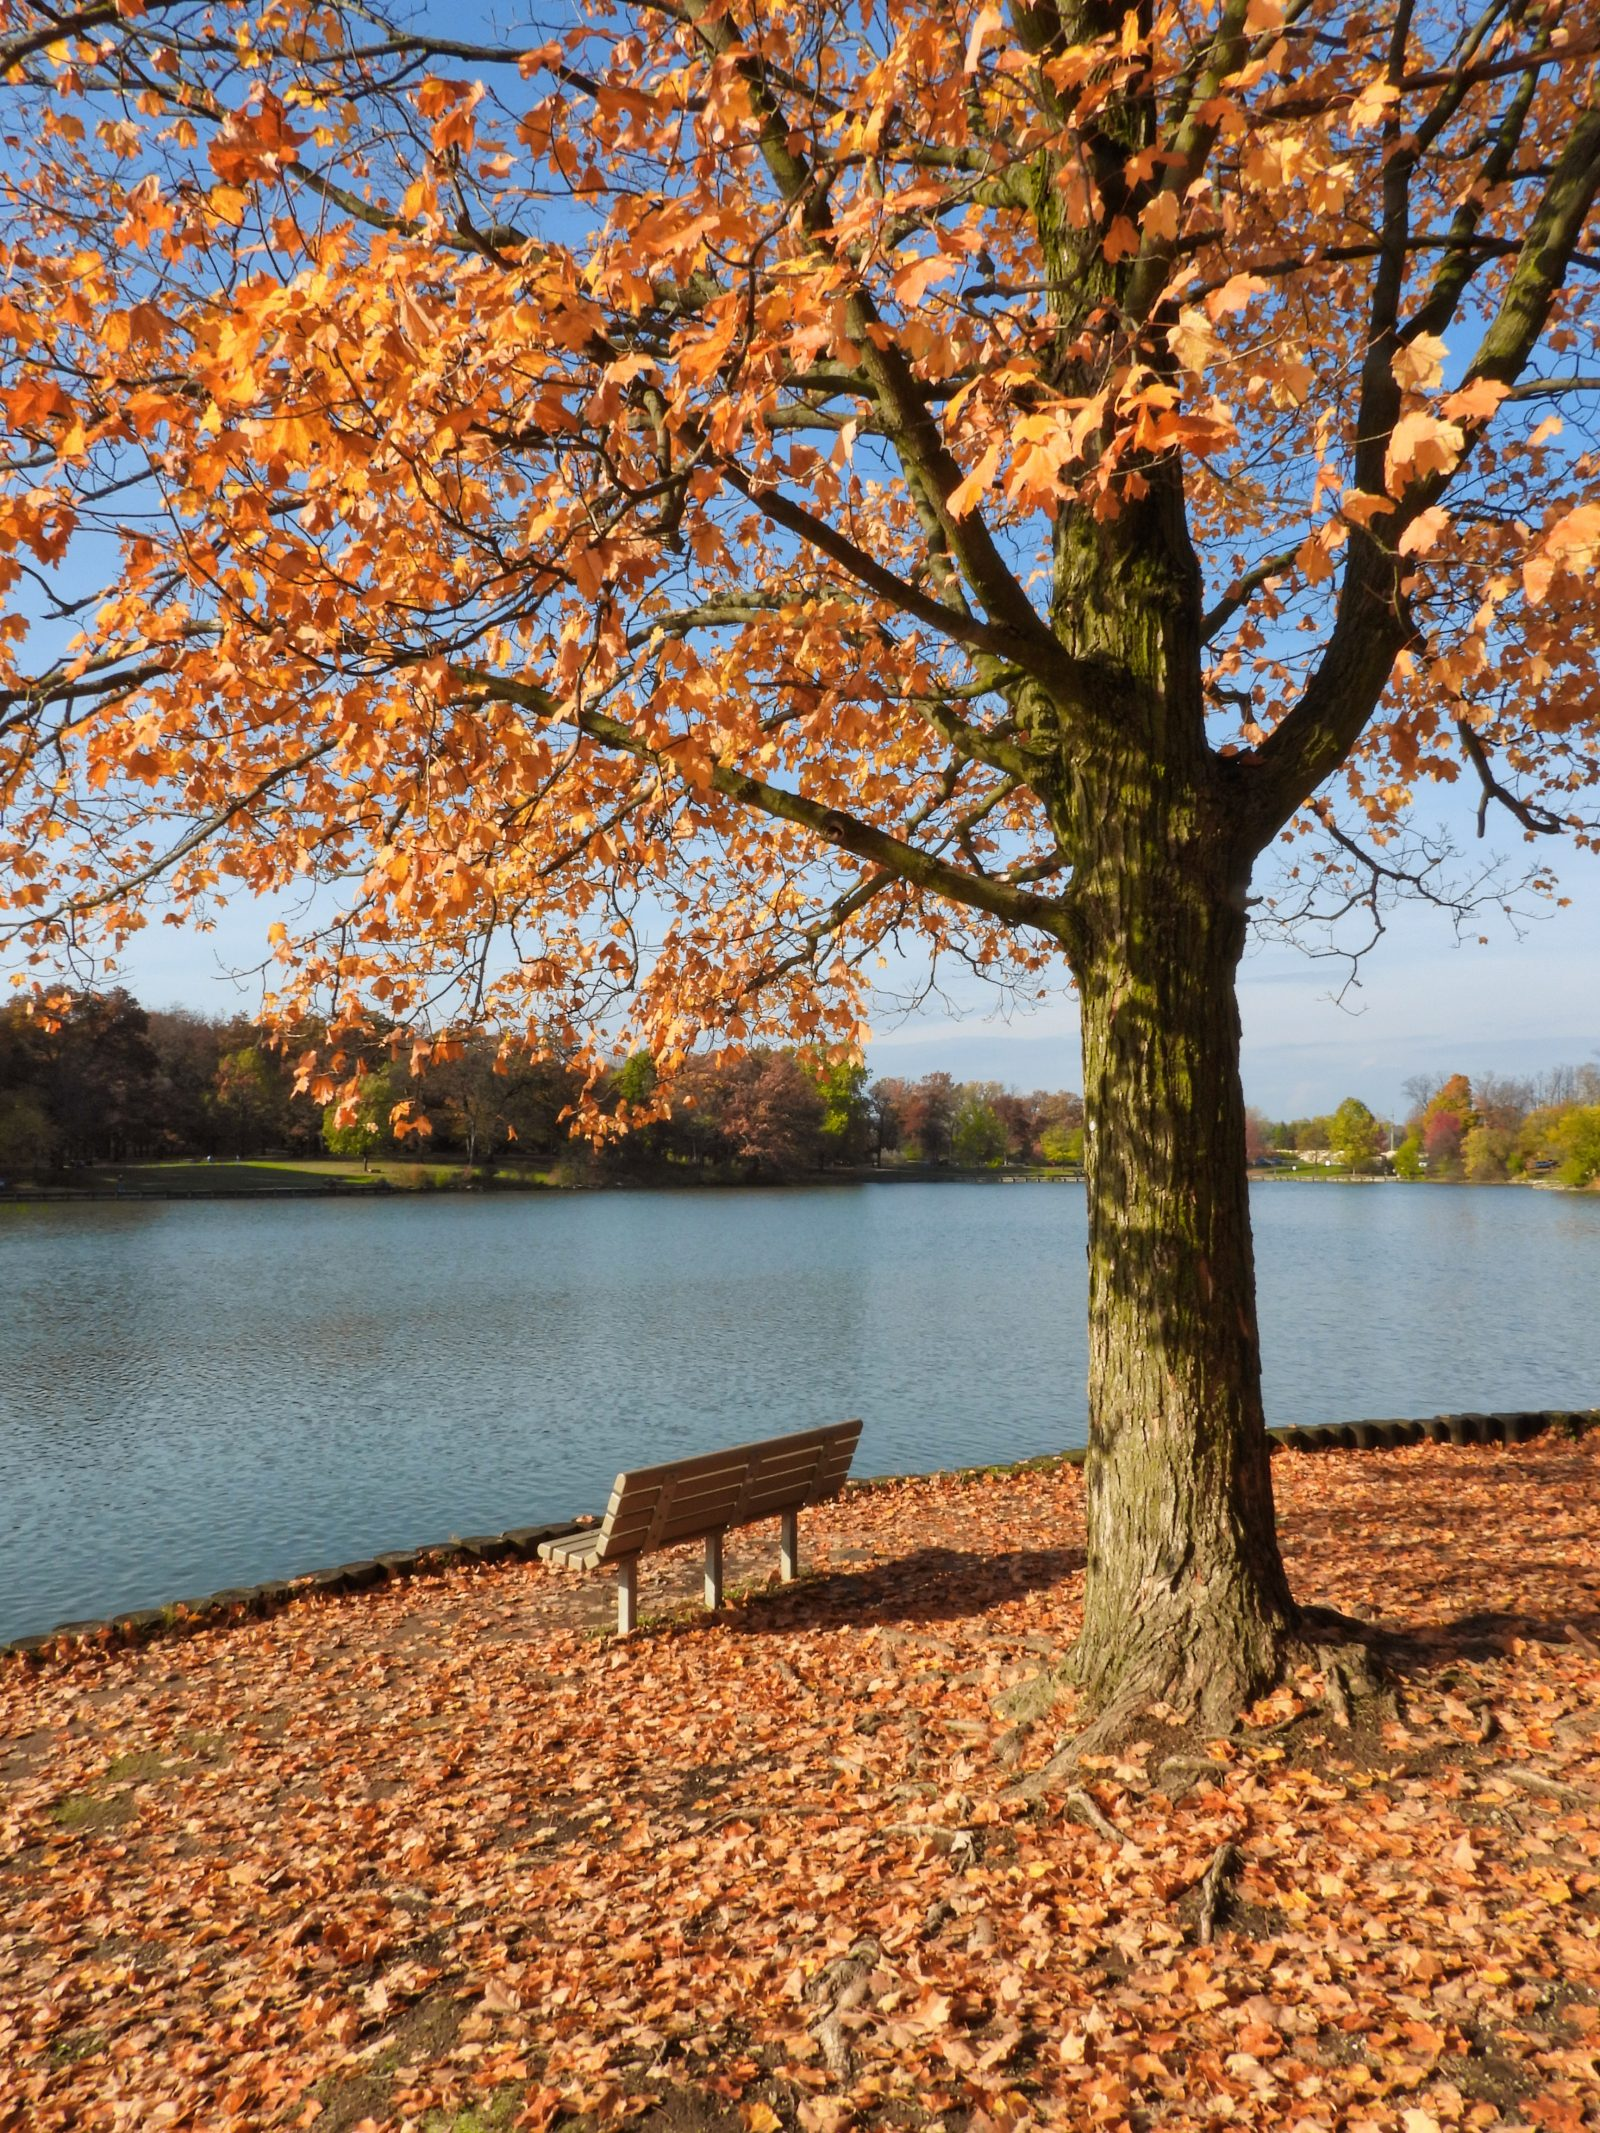 Maple Tree in Fall with Remaining Orange and Yellow Leaves with Park Bench in Front Lakeside with Leaves on the Ground Looking over the Lake on a Sunny Autumn Day